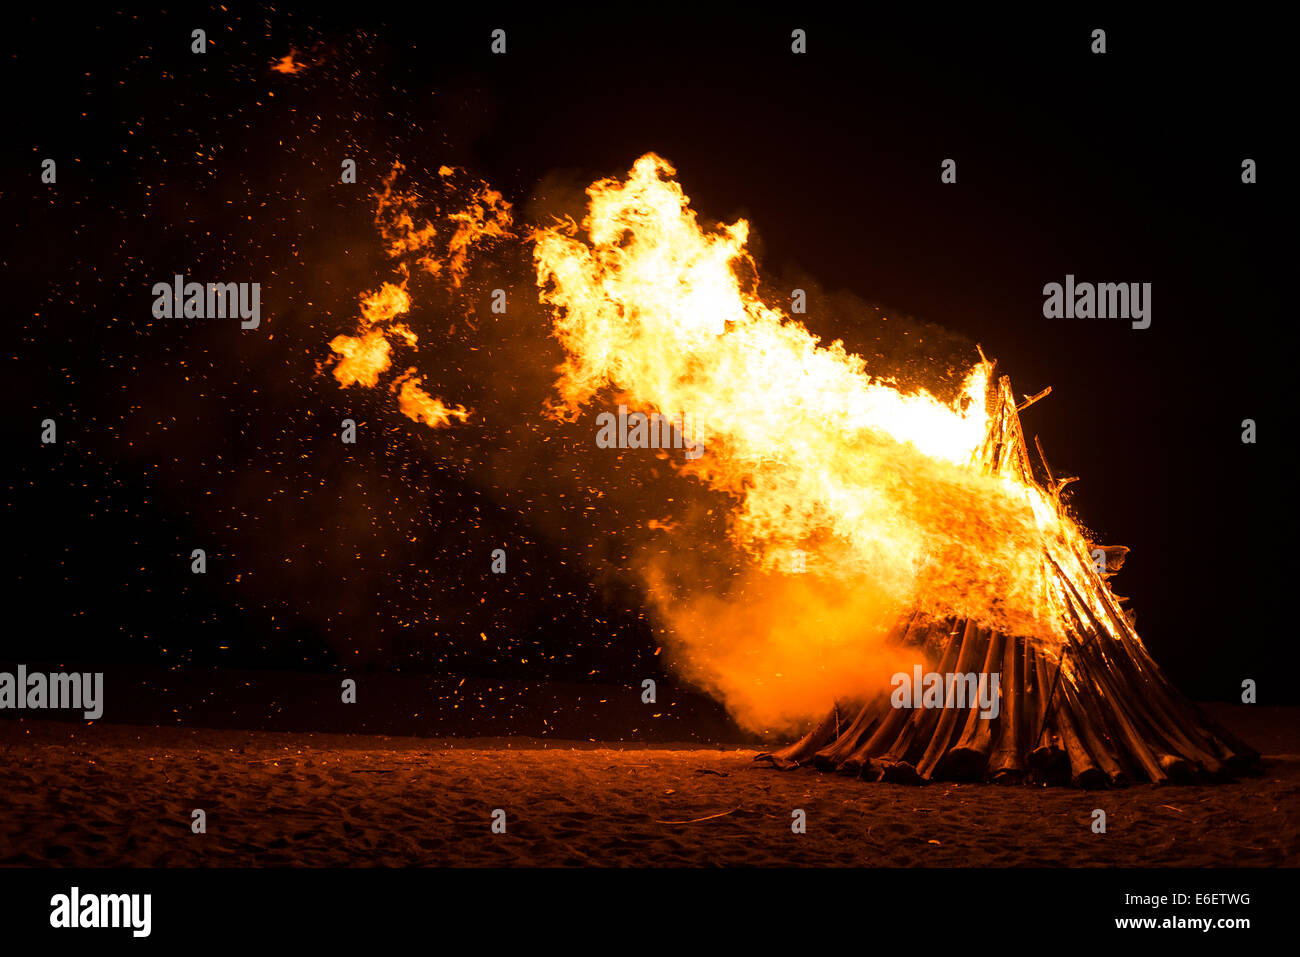 Bonfire during on a hot summer night - Stock Image